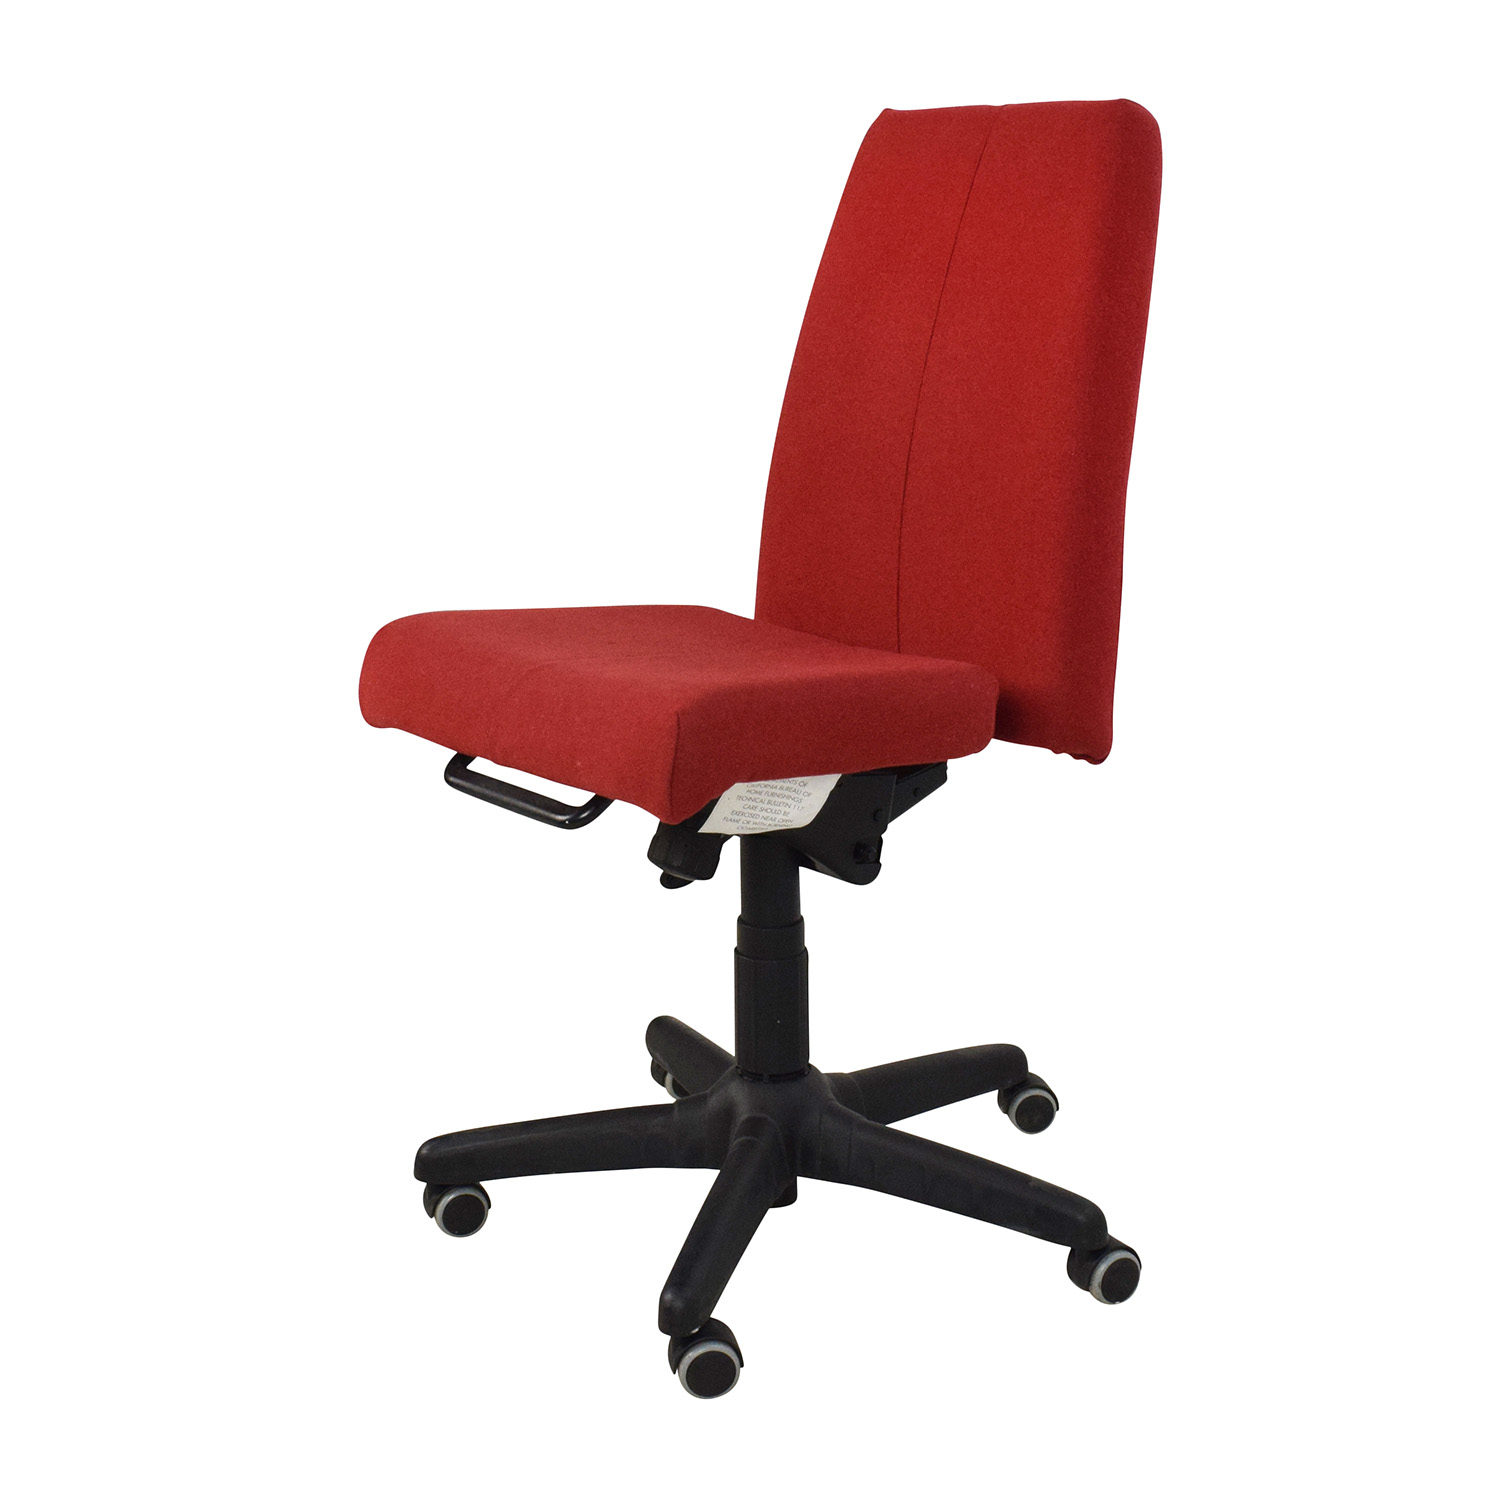 90 OFF Red Armless Adjustable Home Office Chair Chairs